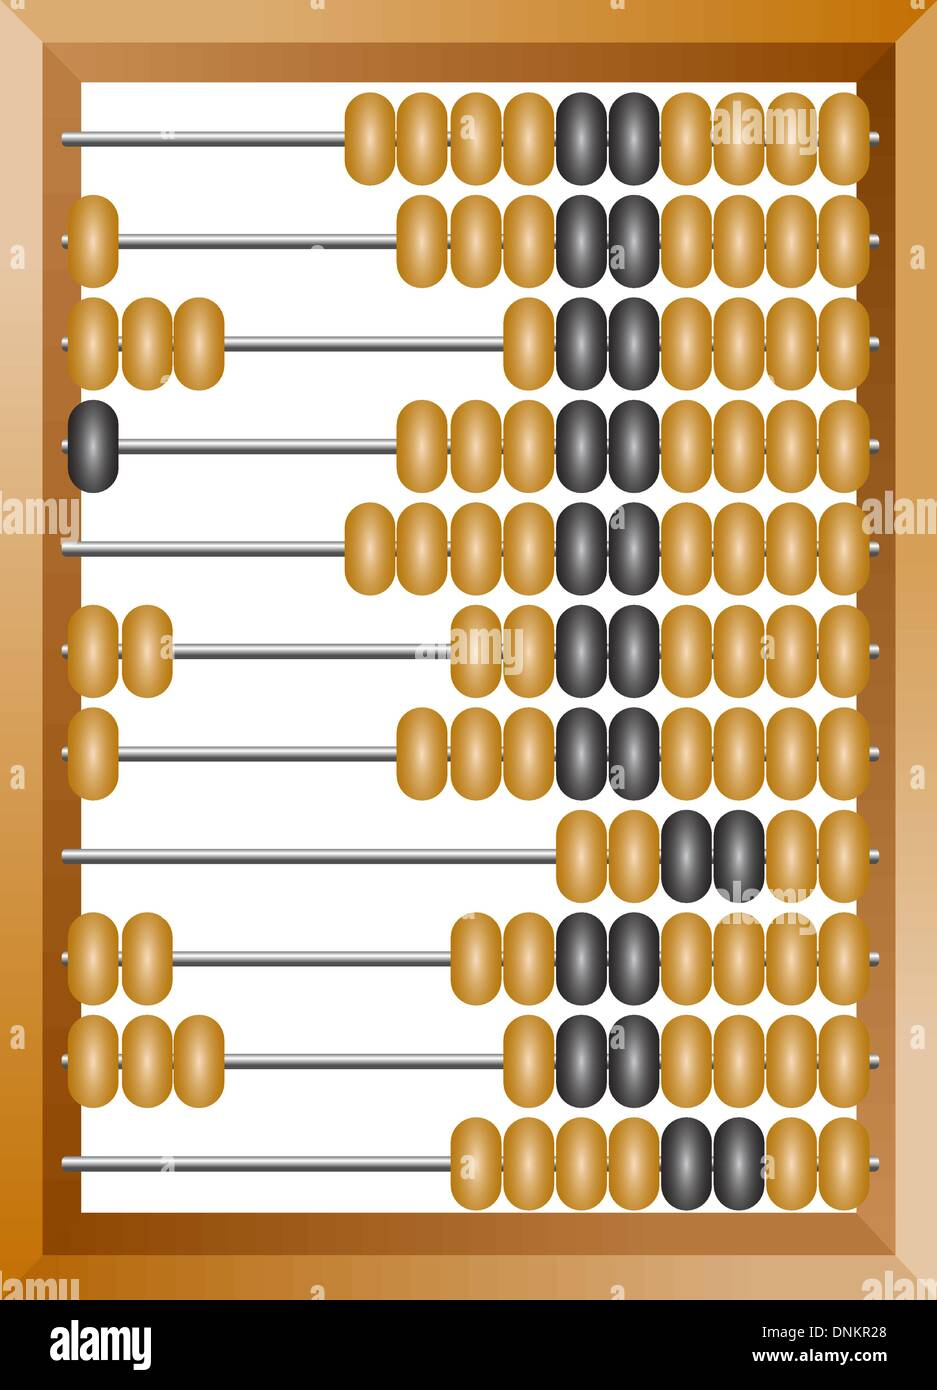 Accounting abacus for financial calculations lies on a white background - Stock Image